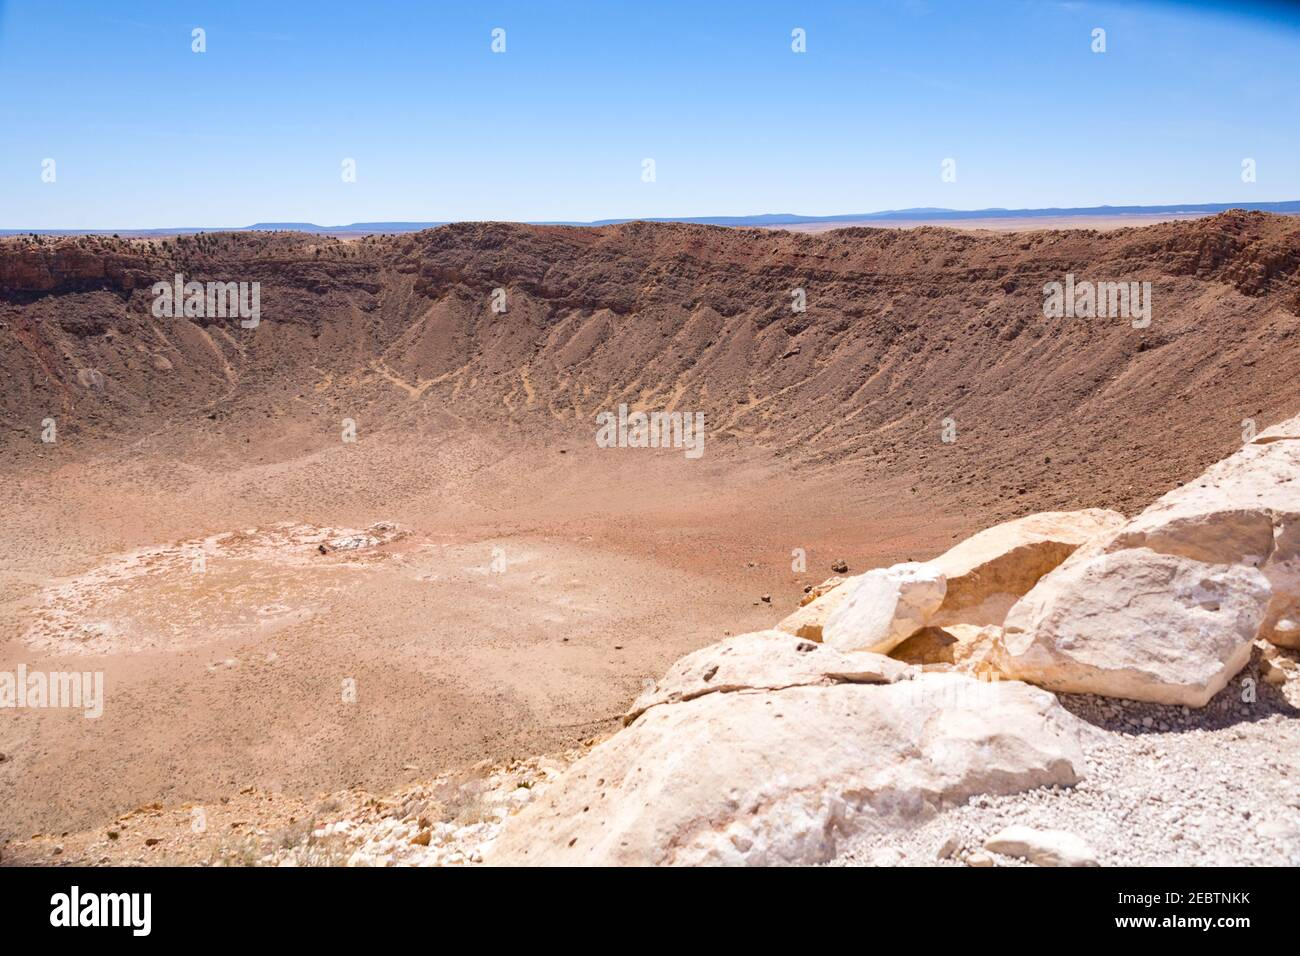 Winslow plains taken from the rim of a meteor crater Arizona USA Stock Photo